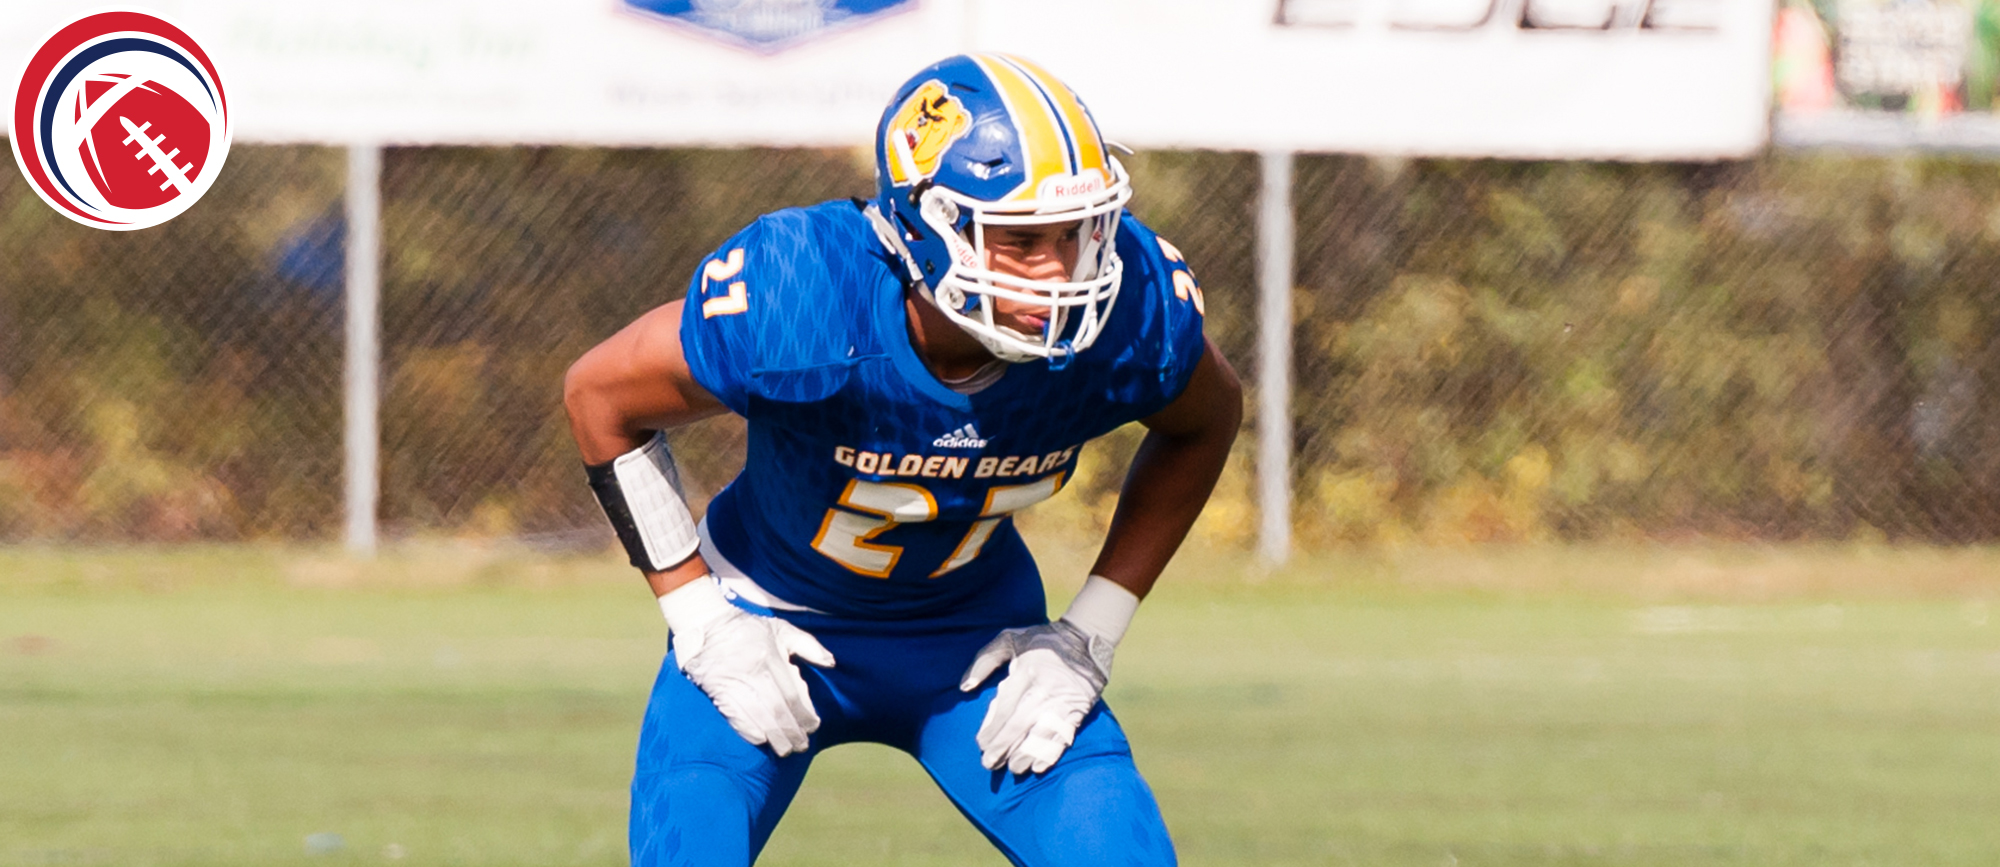 Golden Bears Favored Heading into Second Season of CCC Football